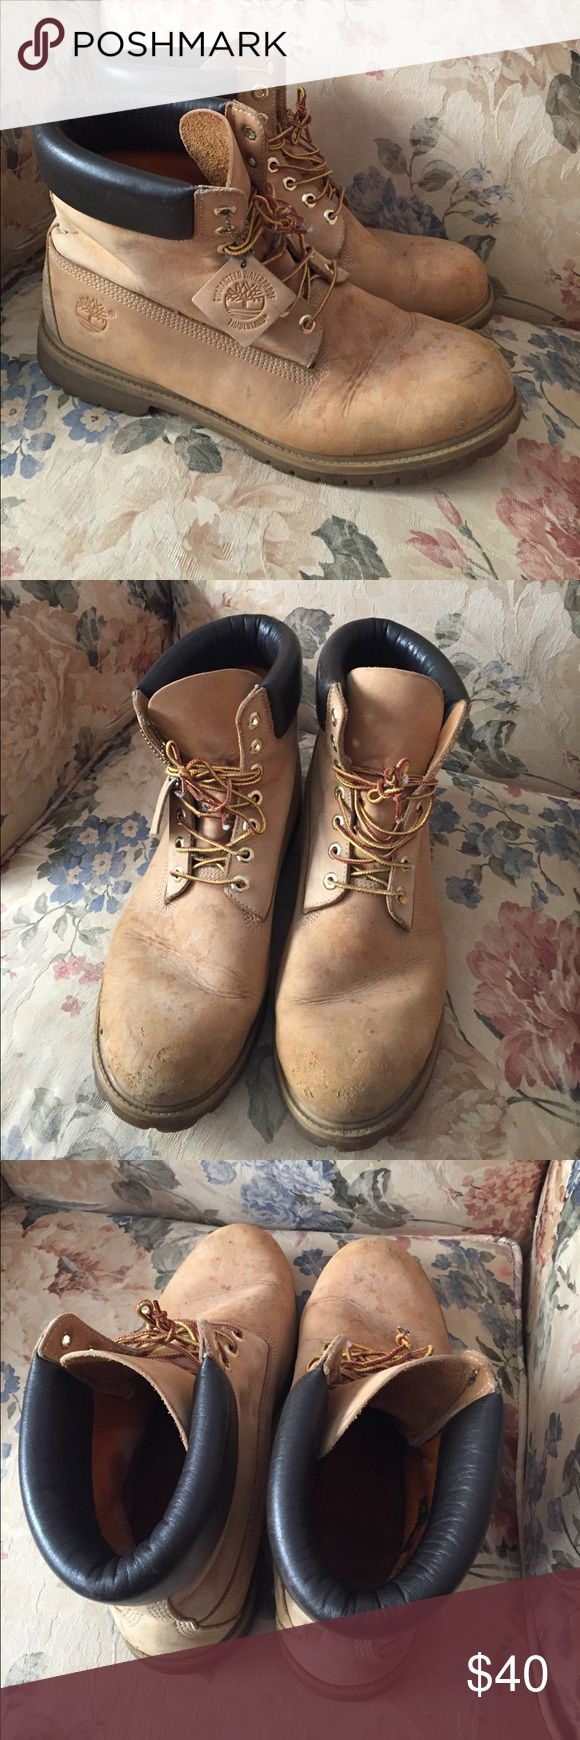 Timberland 6 inch premium wheat NUBUCK size 13 Very nice boots for sale offer up ! Timberland Shoes Boots